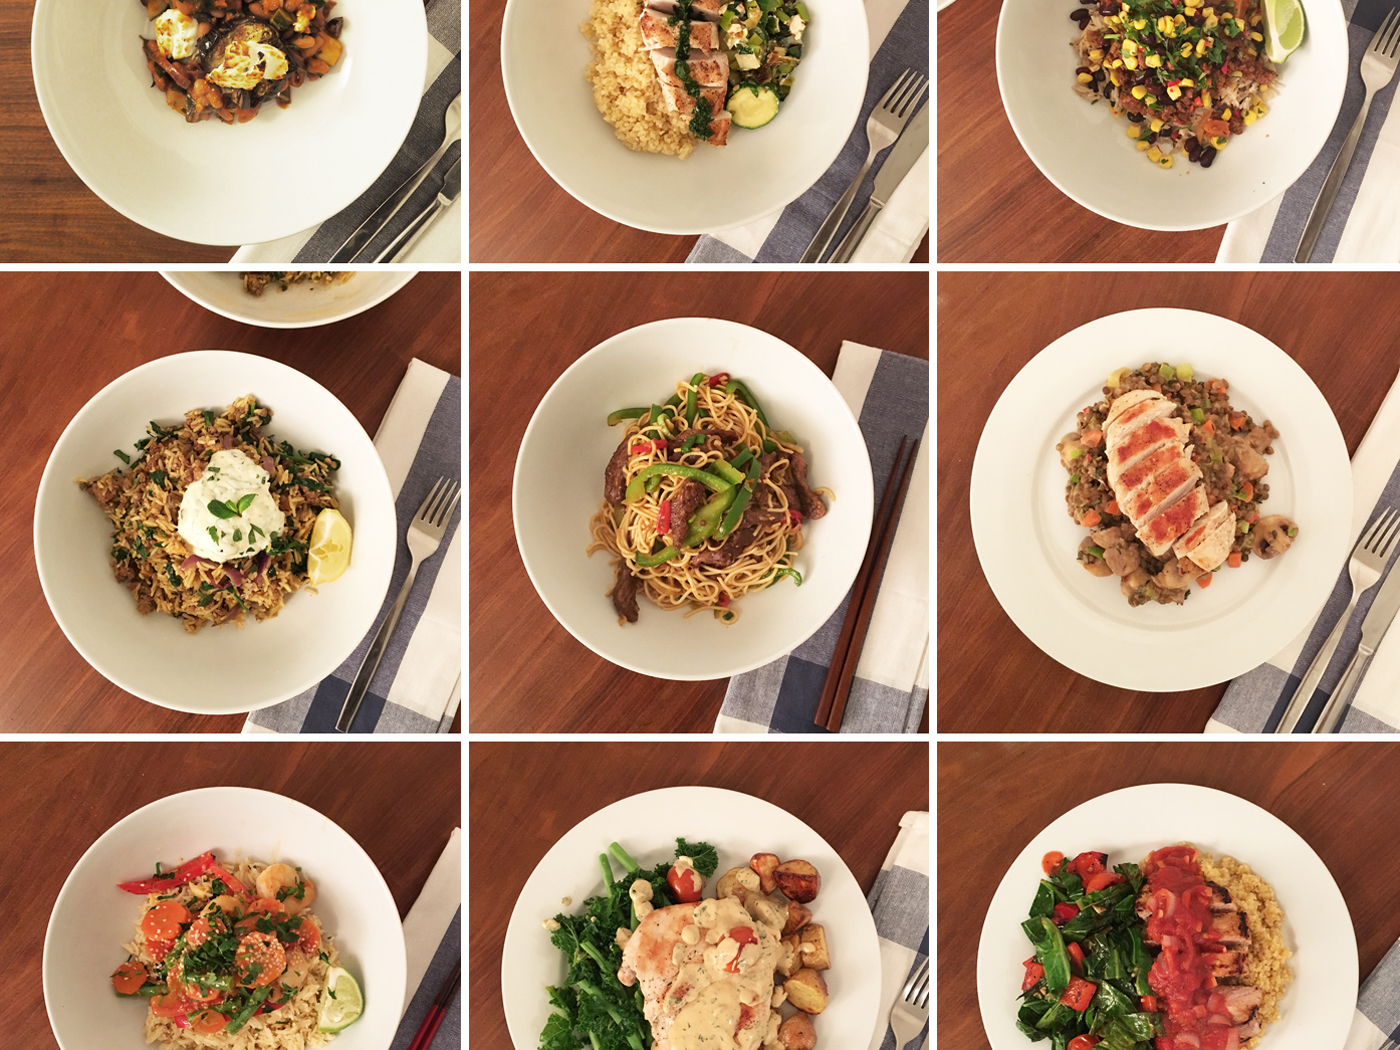 Price New  Hellofresh Meal Kit Delivery Service